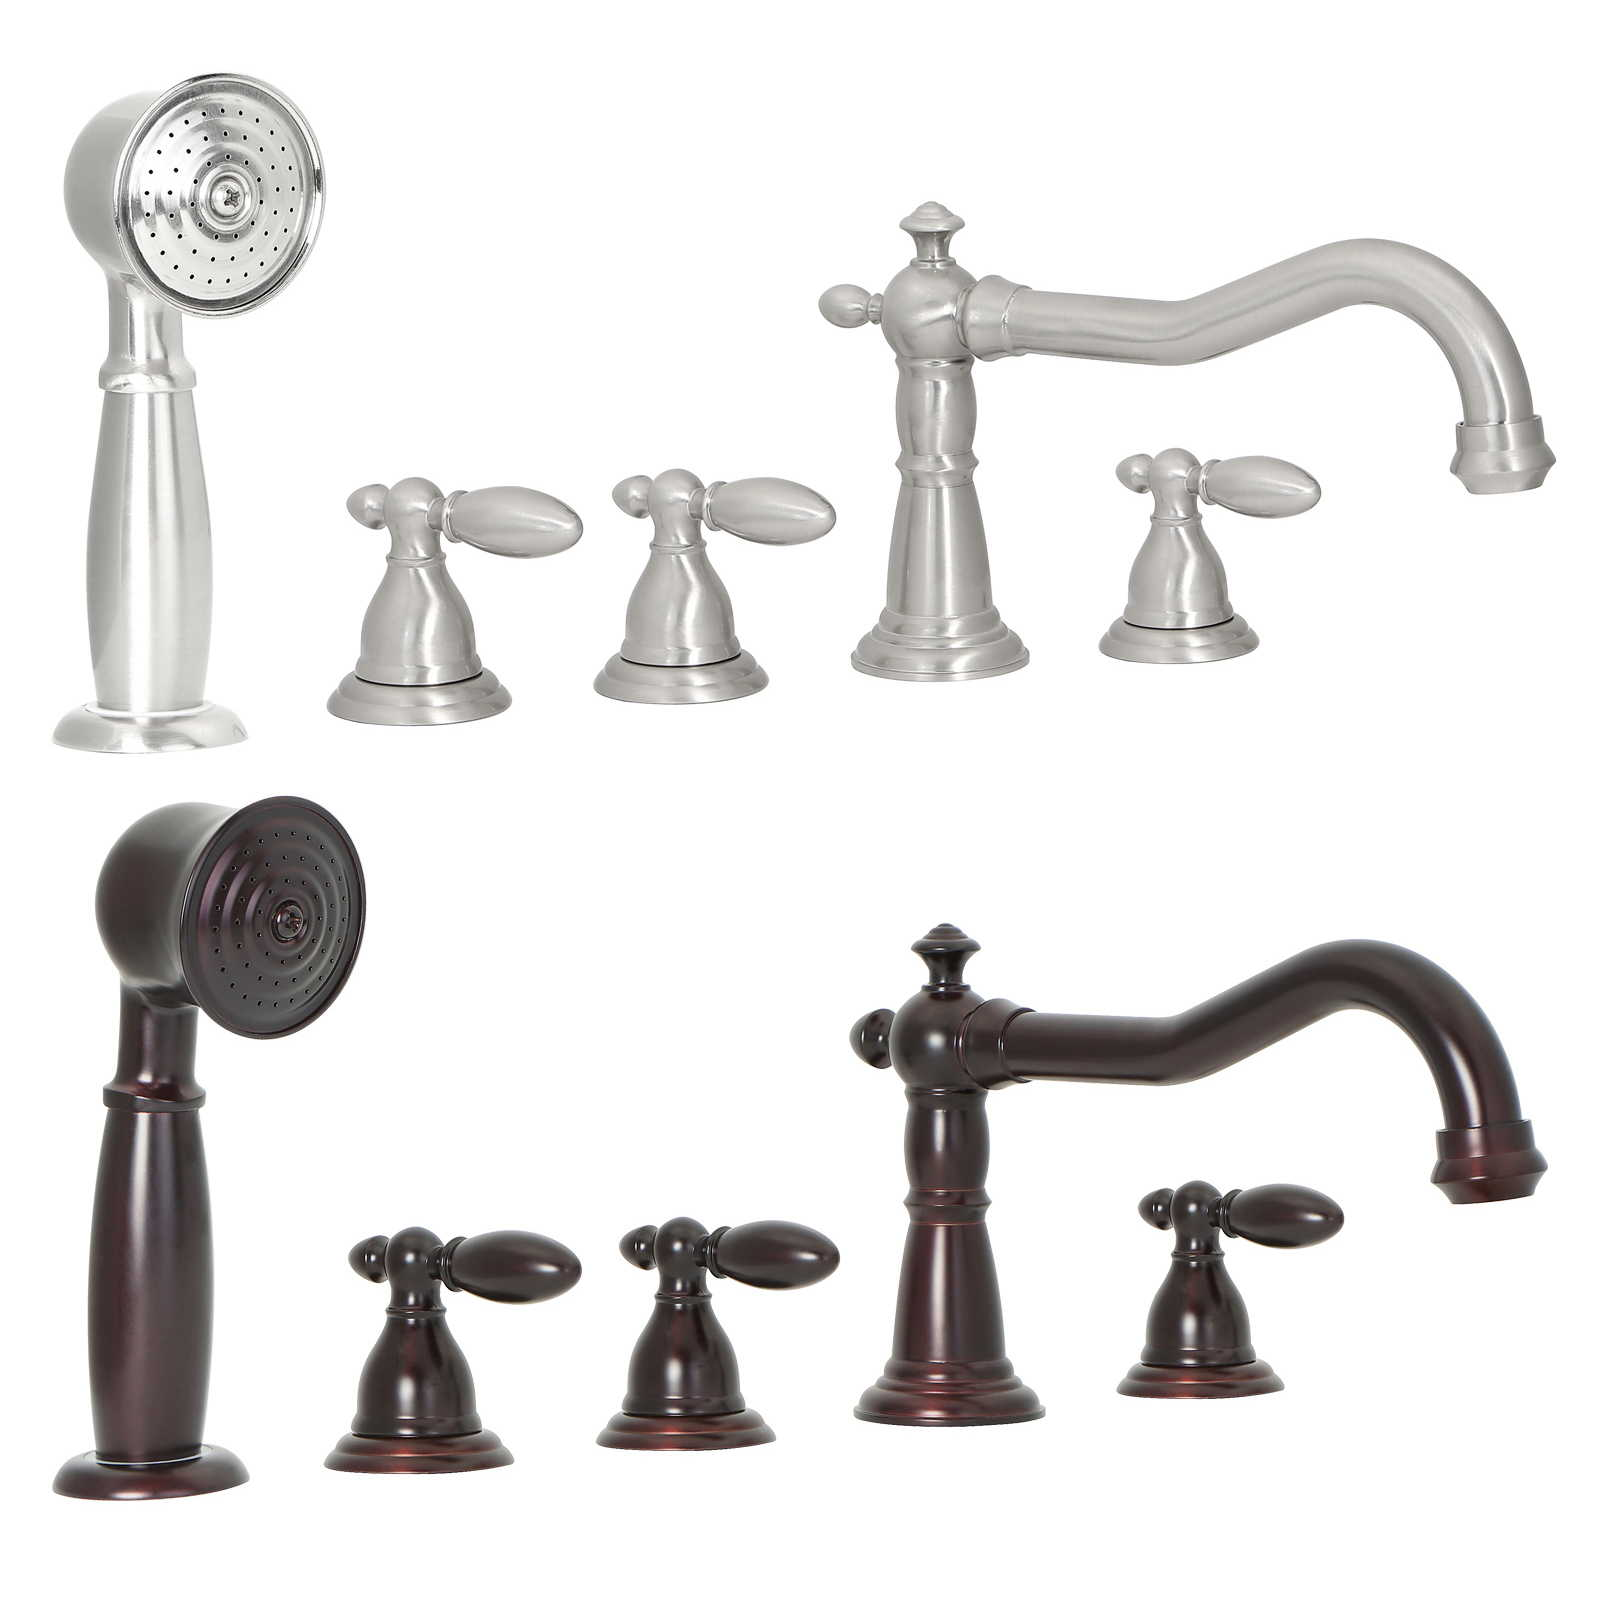 FREUER Bellissimo Collection: Handshower Roman Tub Faucet - Multiple Finishes Available